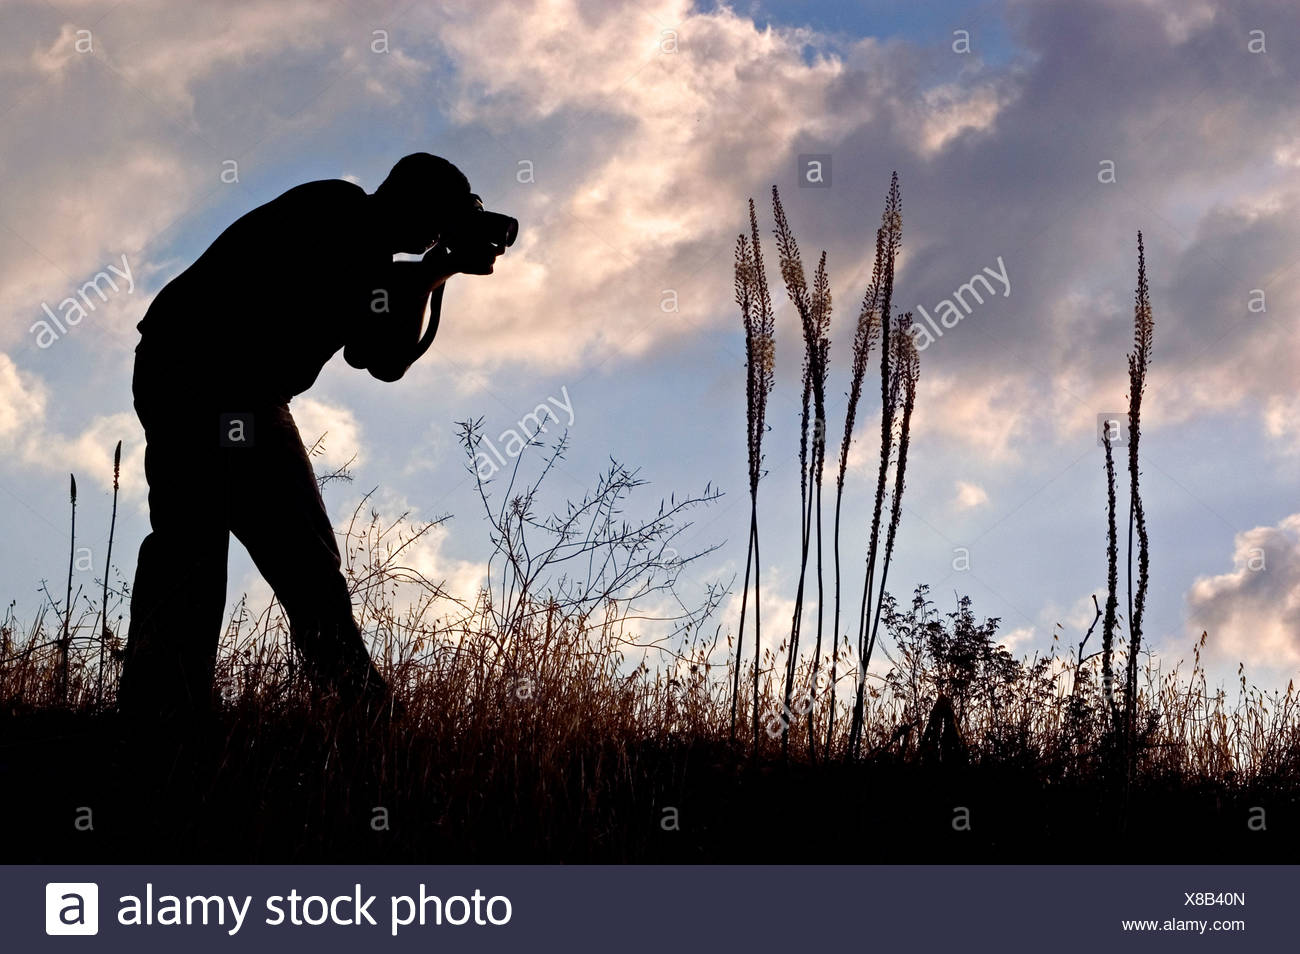 silhouette of a nature photographer photographing blooming Urginea maritima - Stock Image